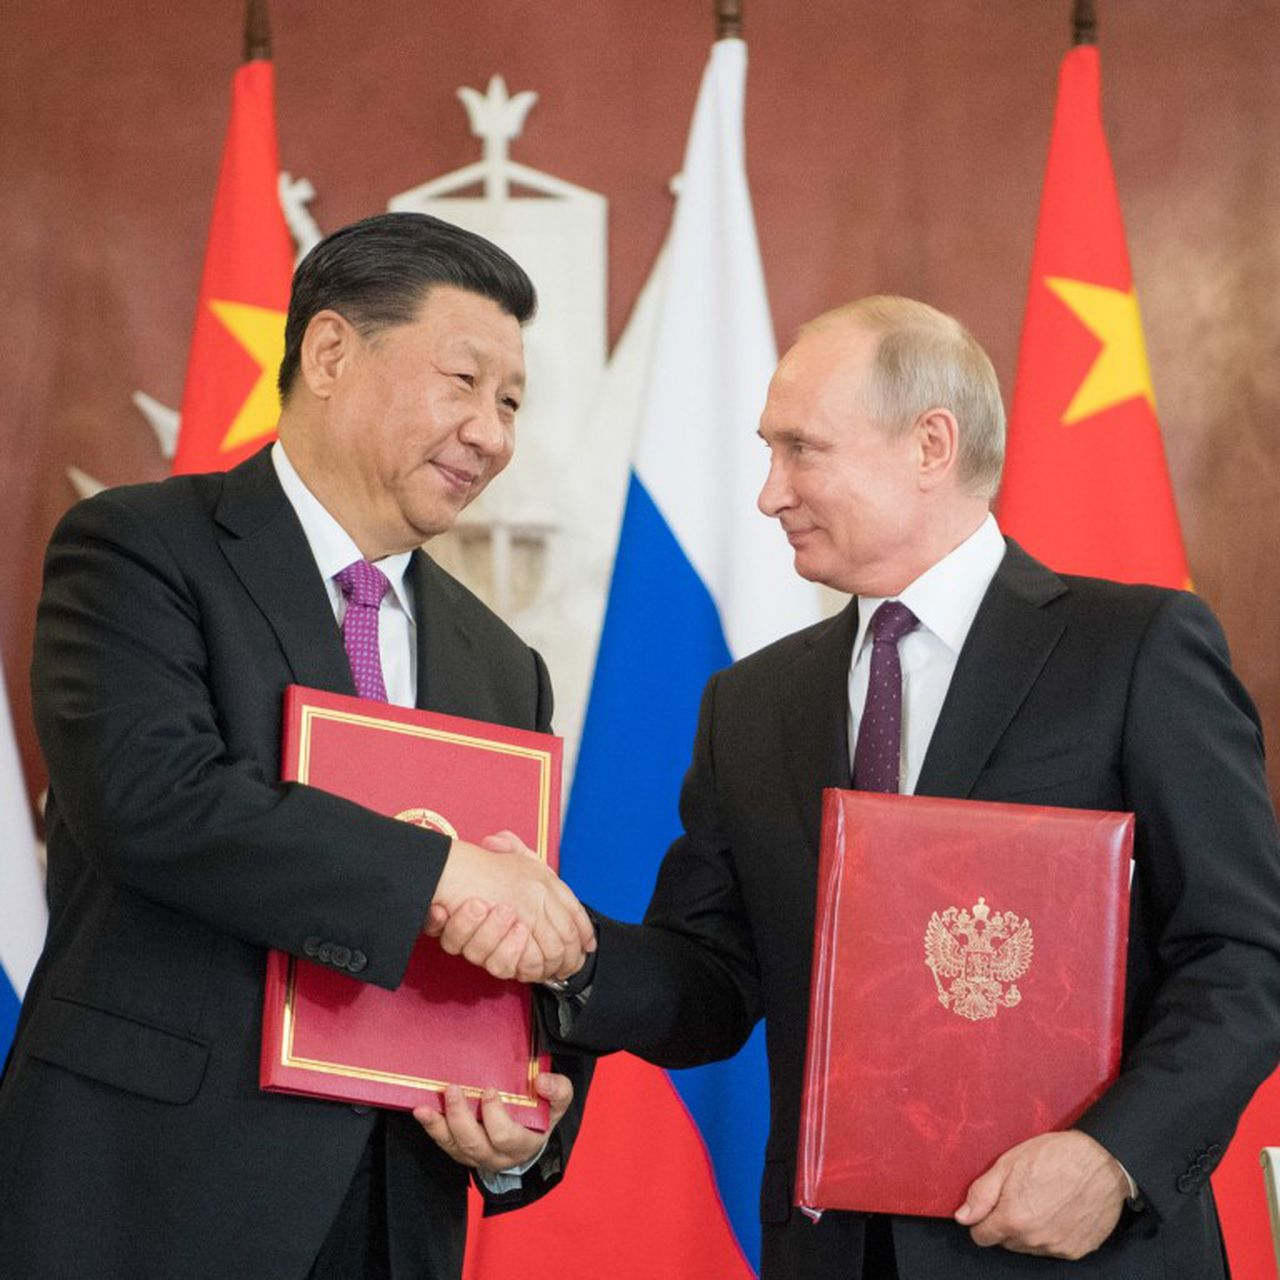 Role of Russia and China in the upcoming US elections